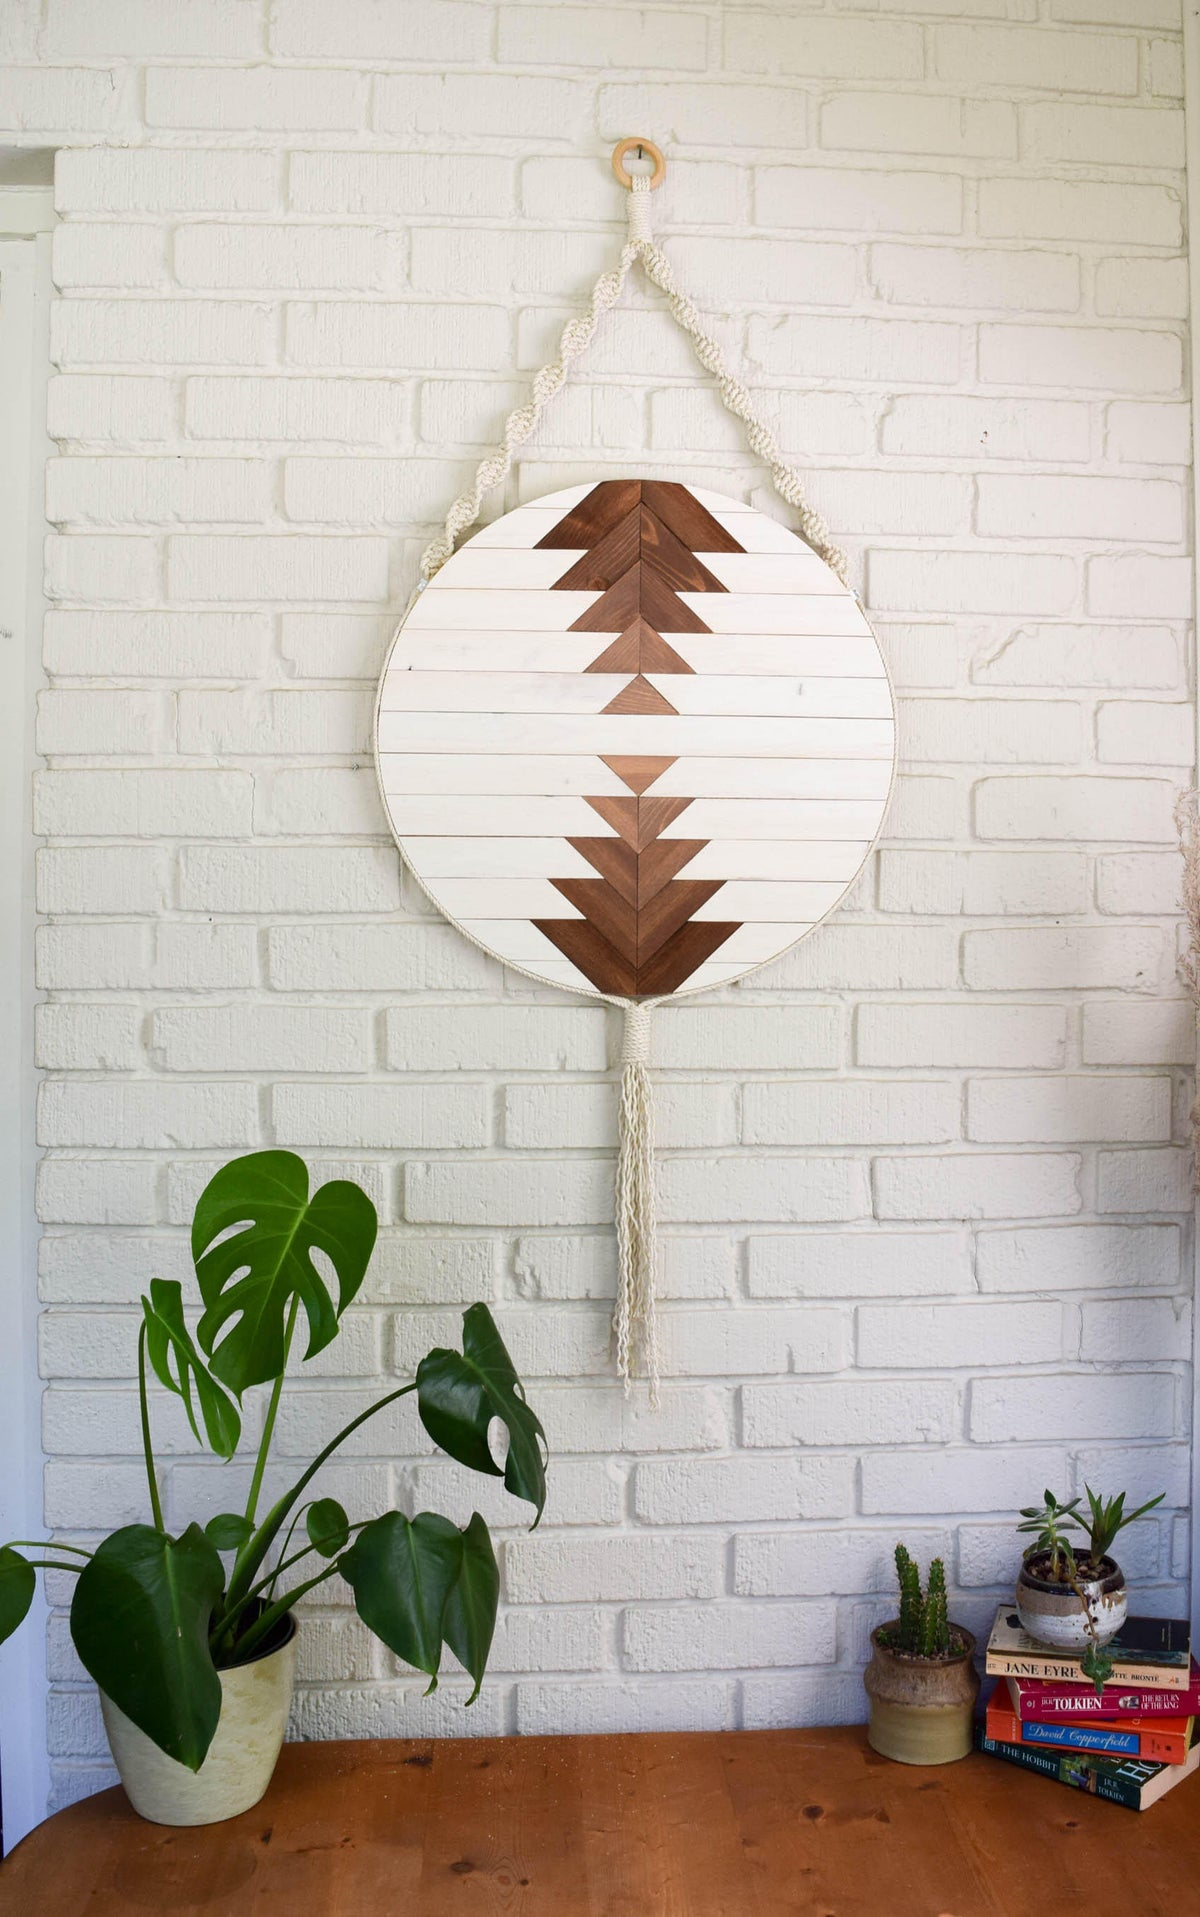 CALLISTO Wood Wall Art - Macrame Wall Hanging - Boho Wood Art - Round Wooden Wall Art - Modern Wood Art - Round Fiber Art - Boho Nursery